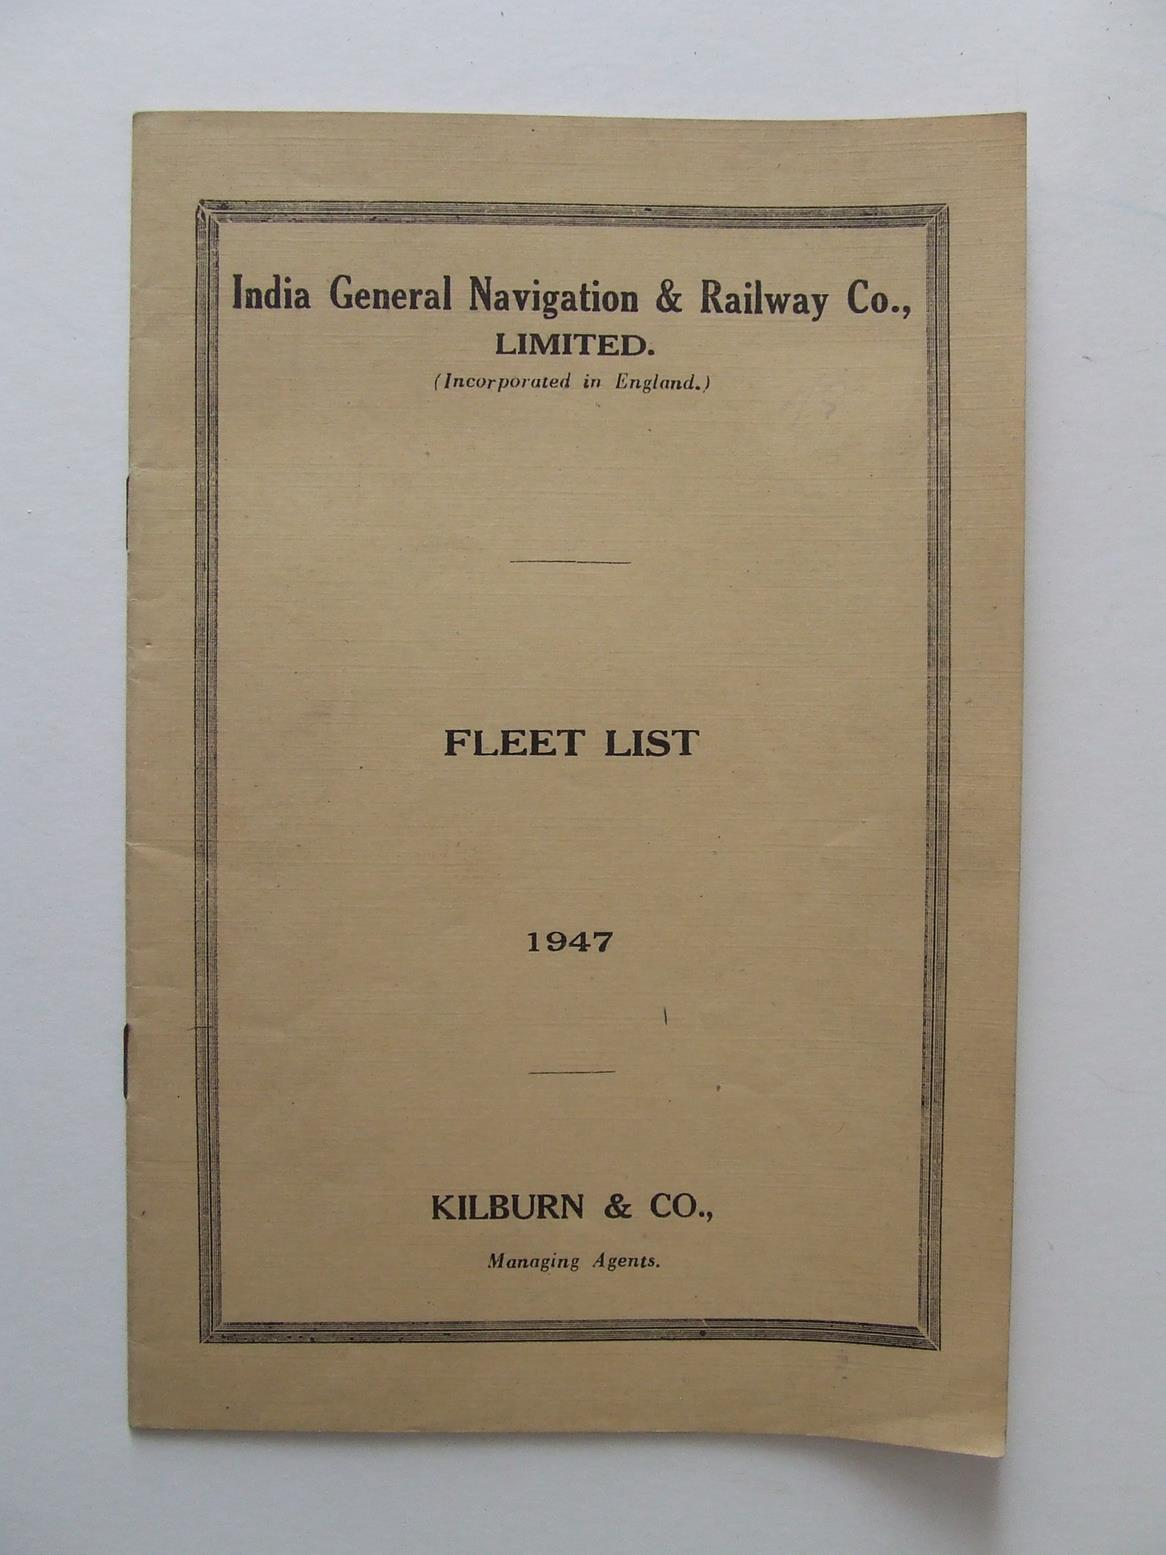 India General Navigation & Railway Co. Limited - Fleet List 1947